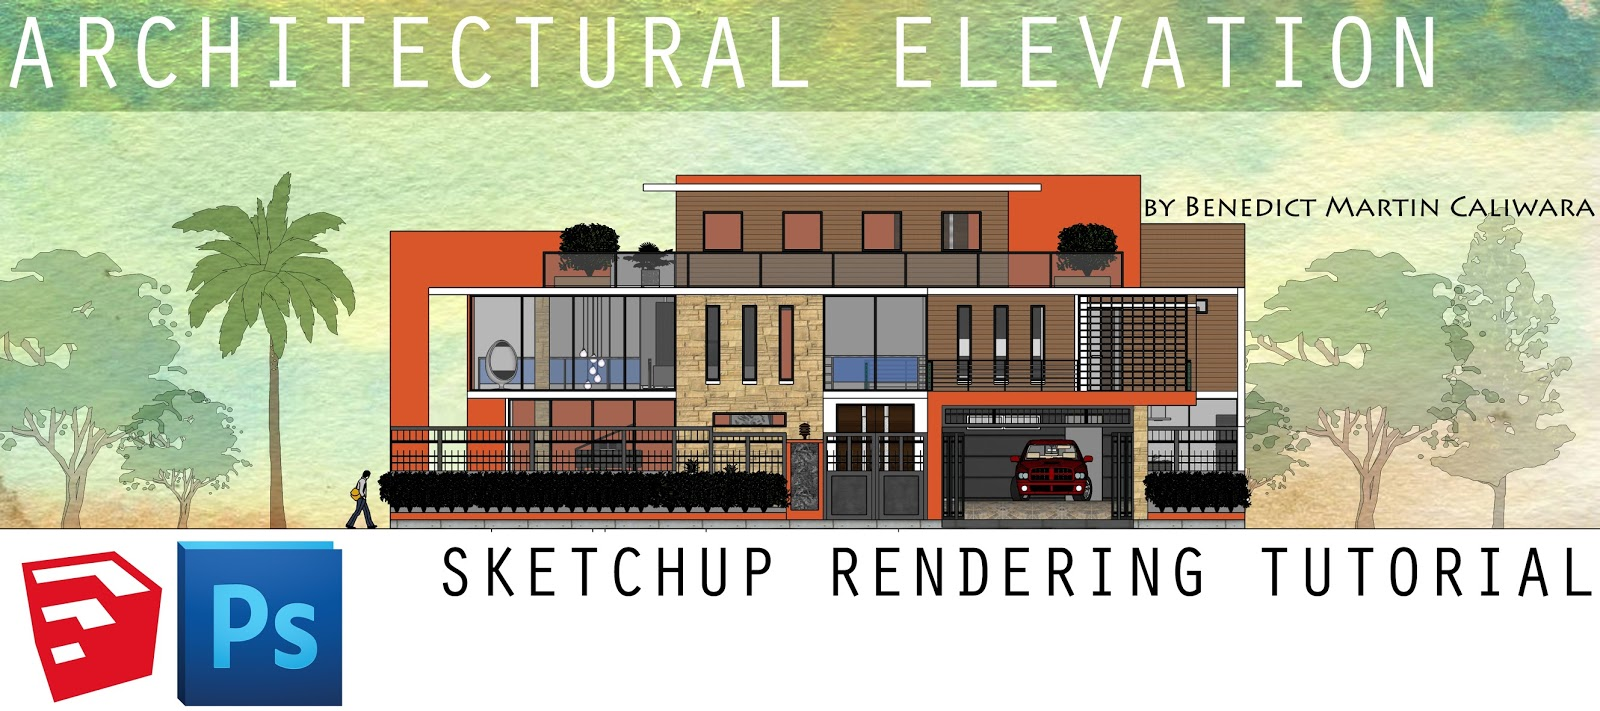 L Arch Viz: Architectural Elevation: SketchUp Rendering